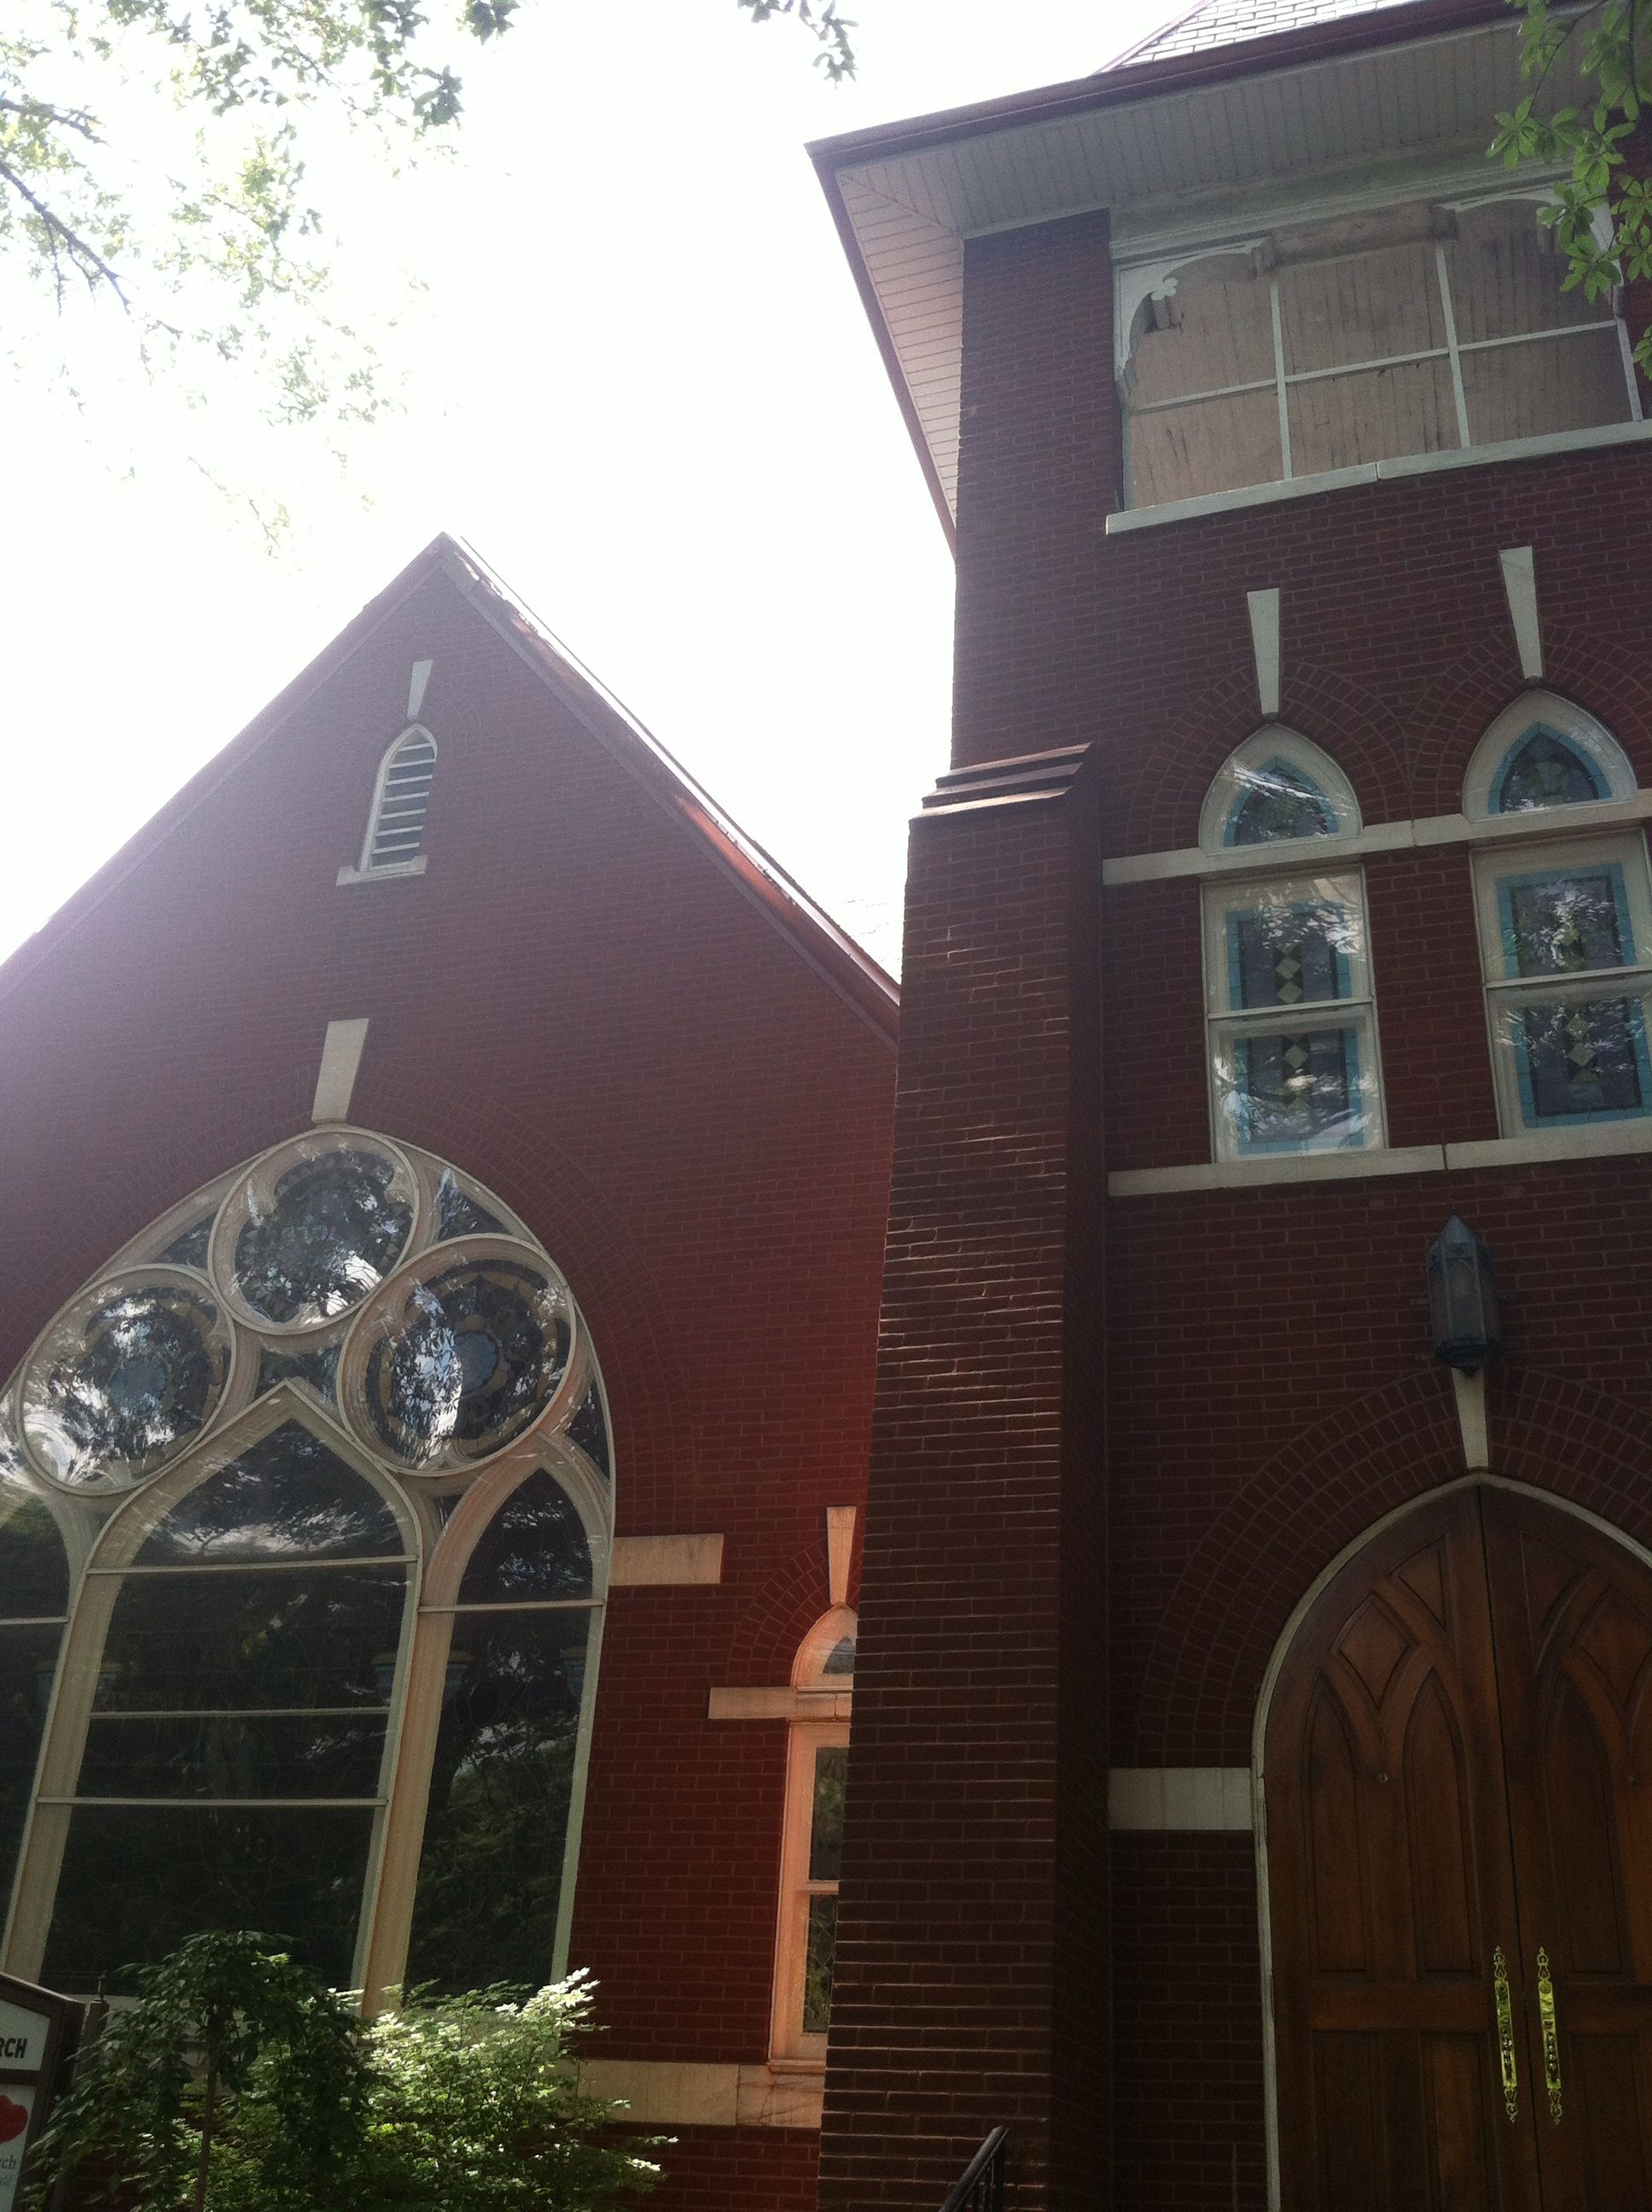 The front of the pretty church I found. I absolutely adore the windows.